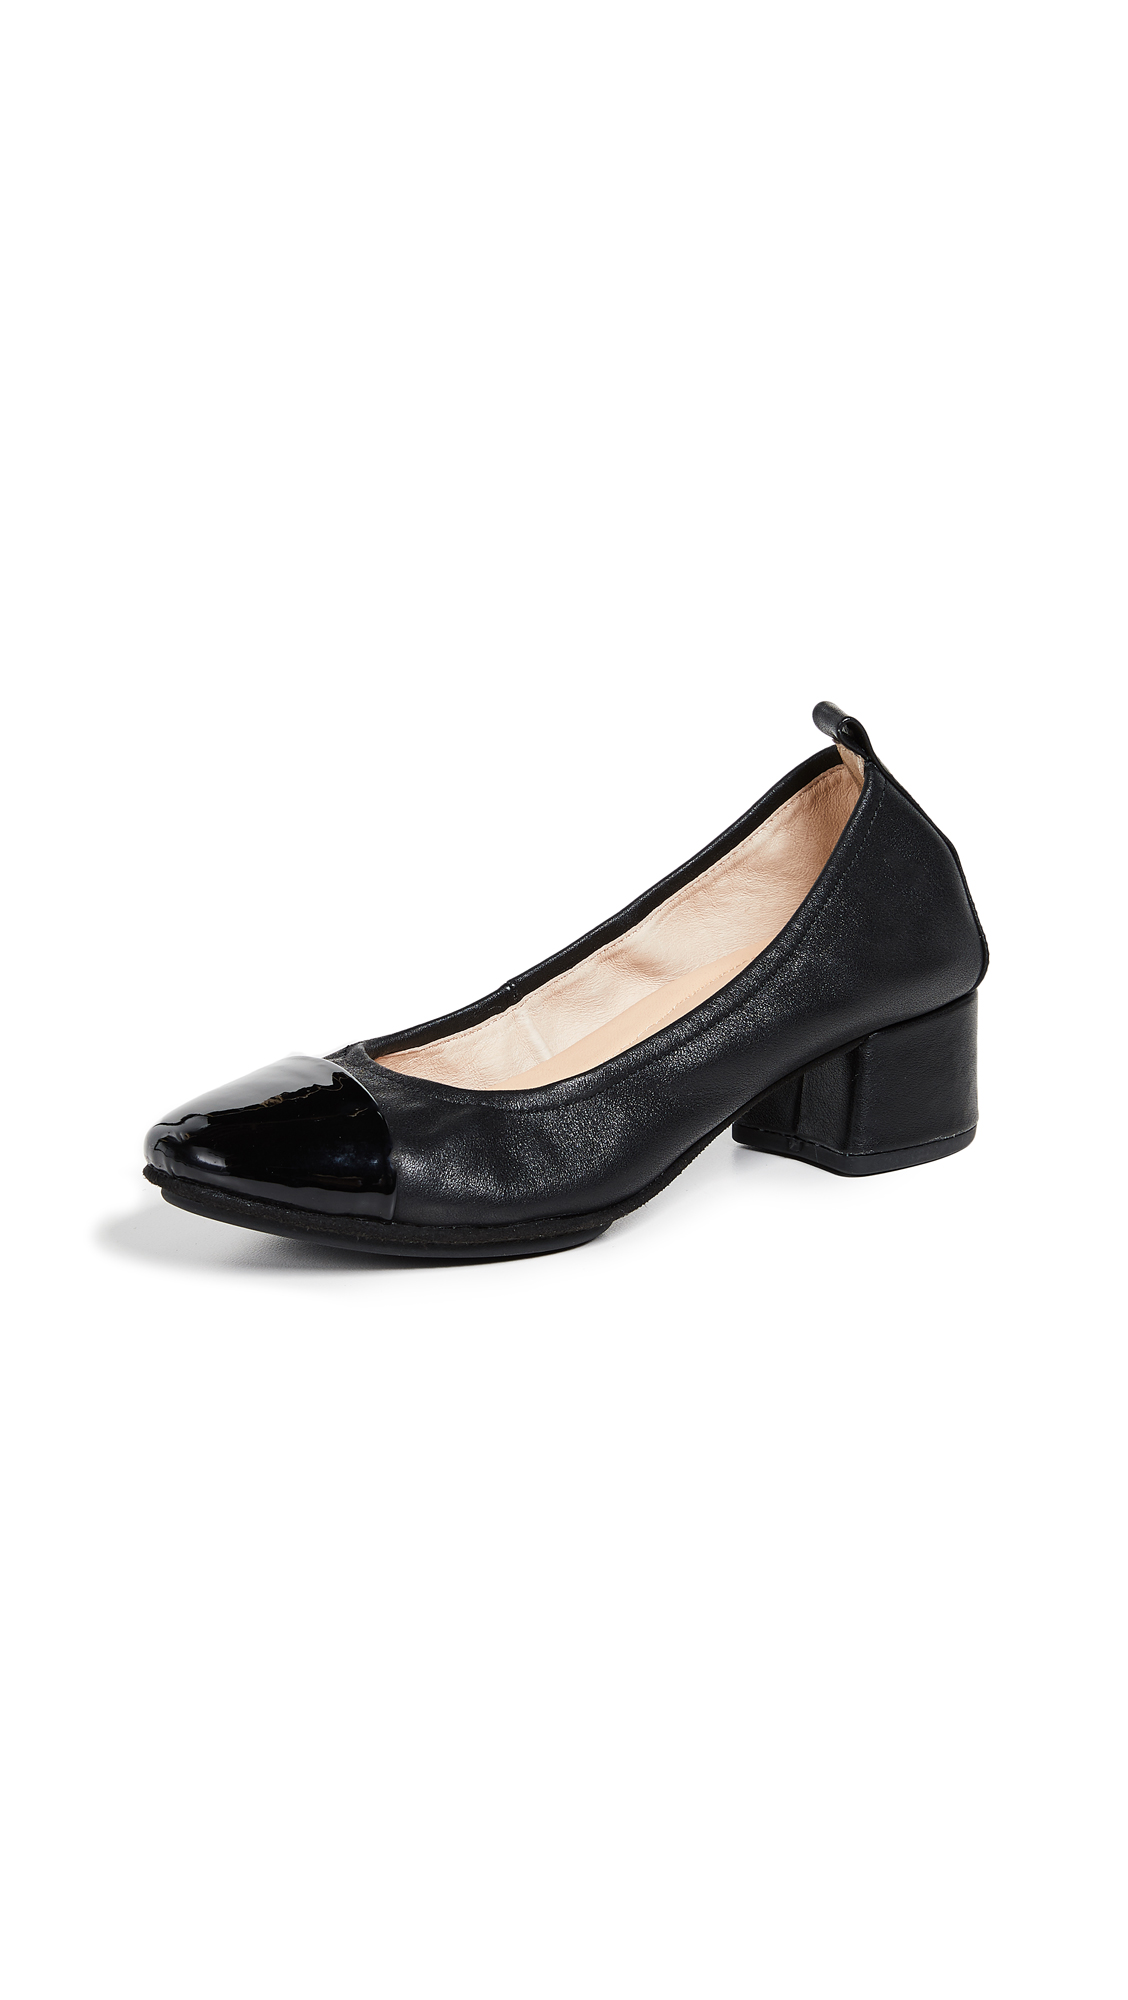 Yosi Samra Newton Cap Block Heel Pumps In Black